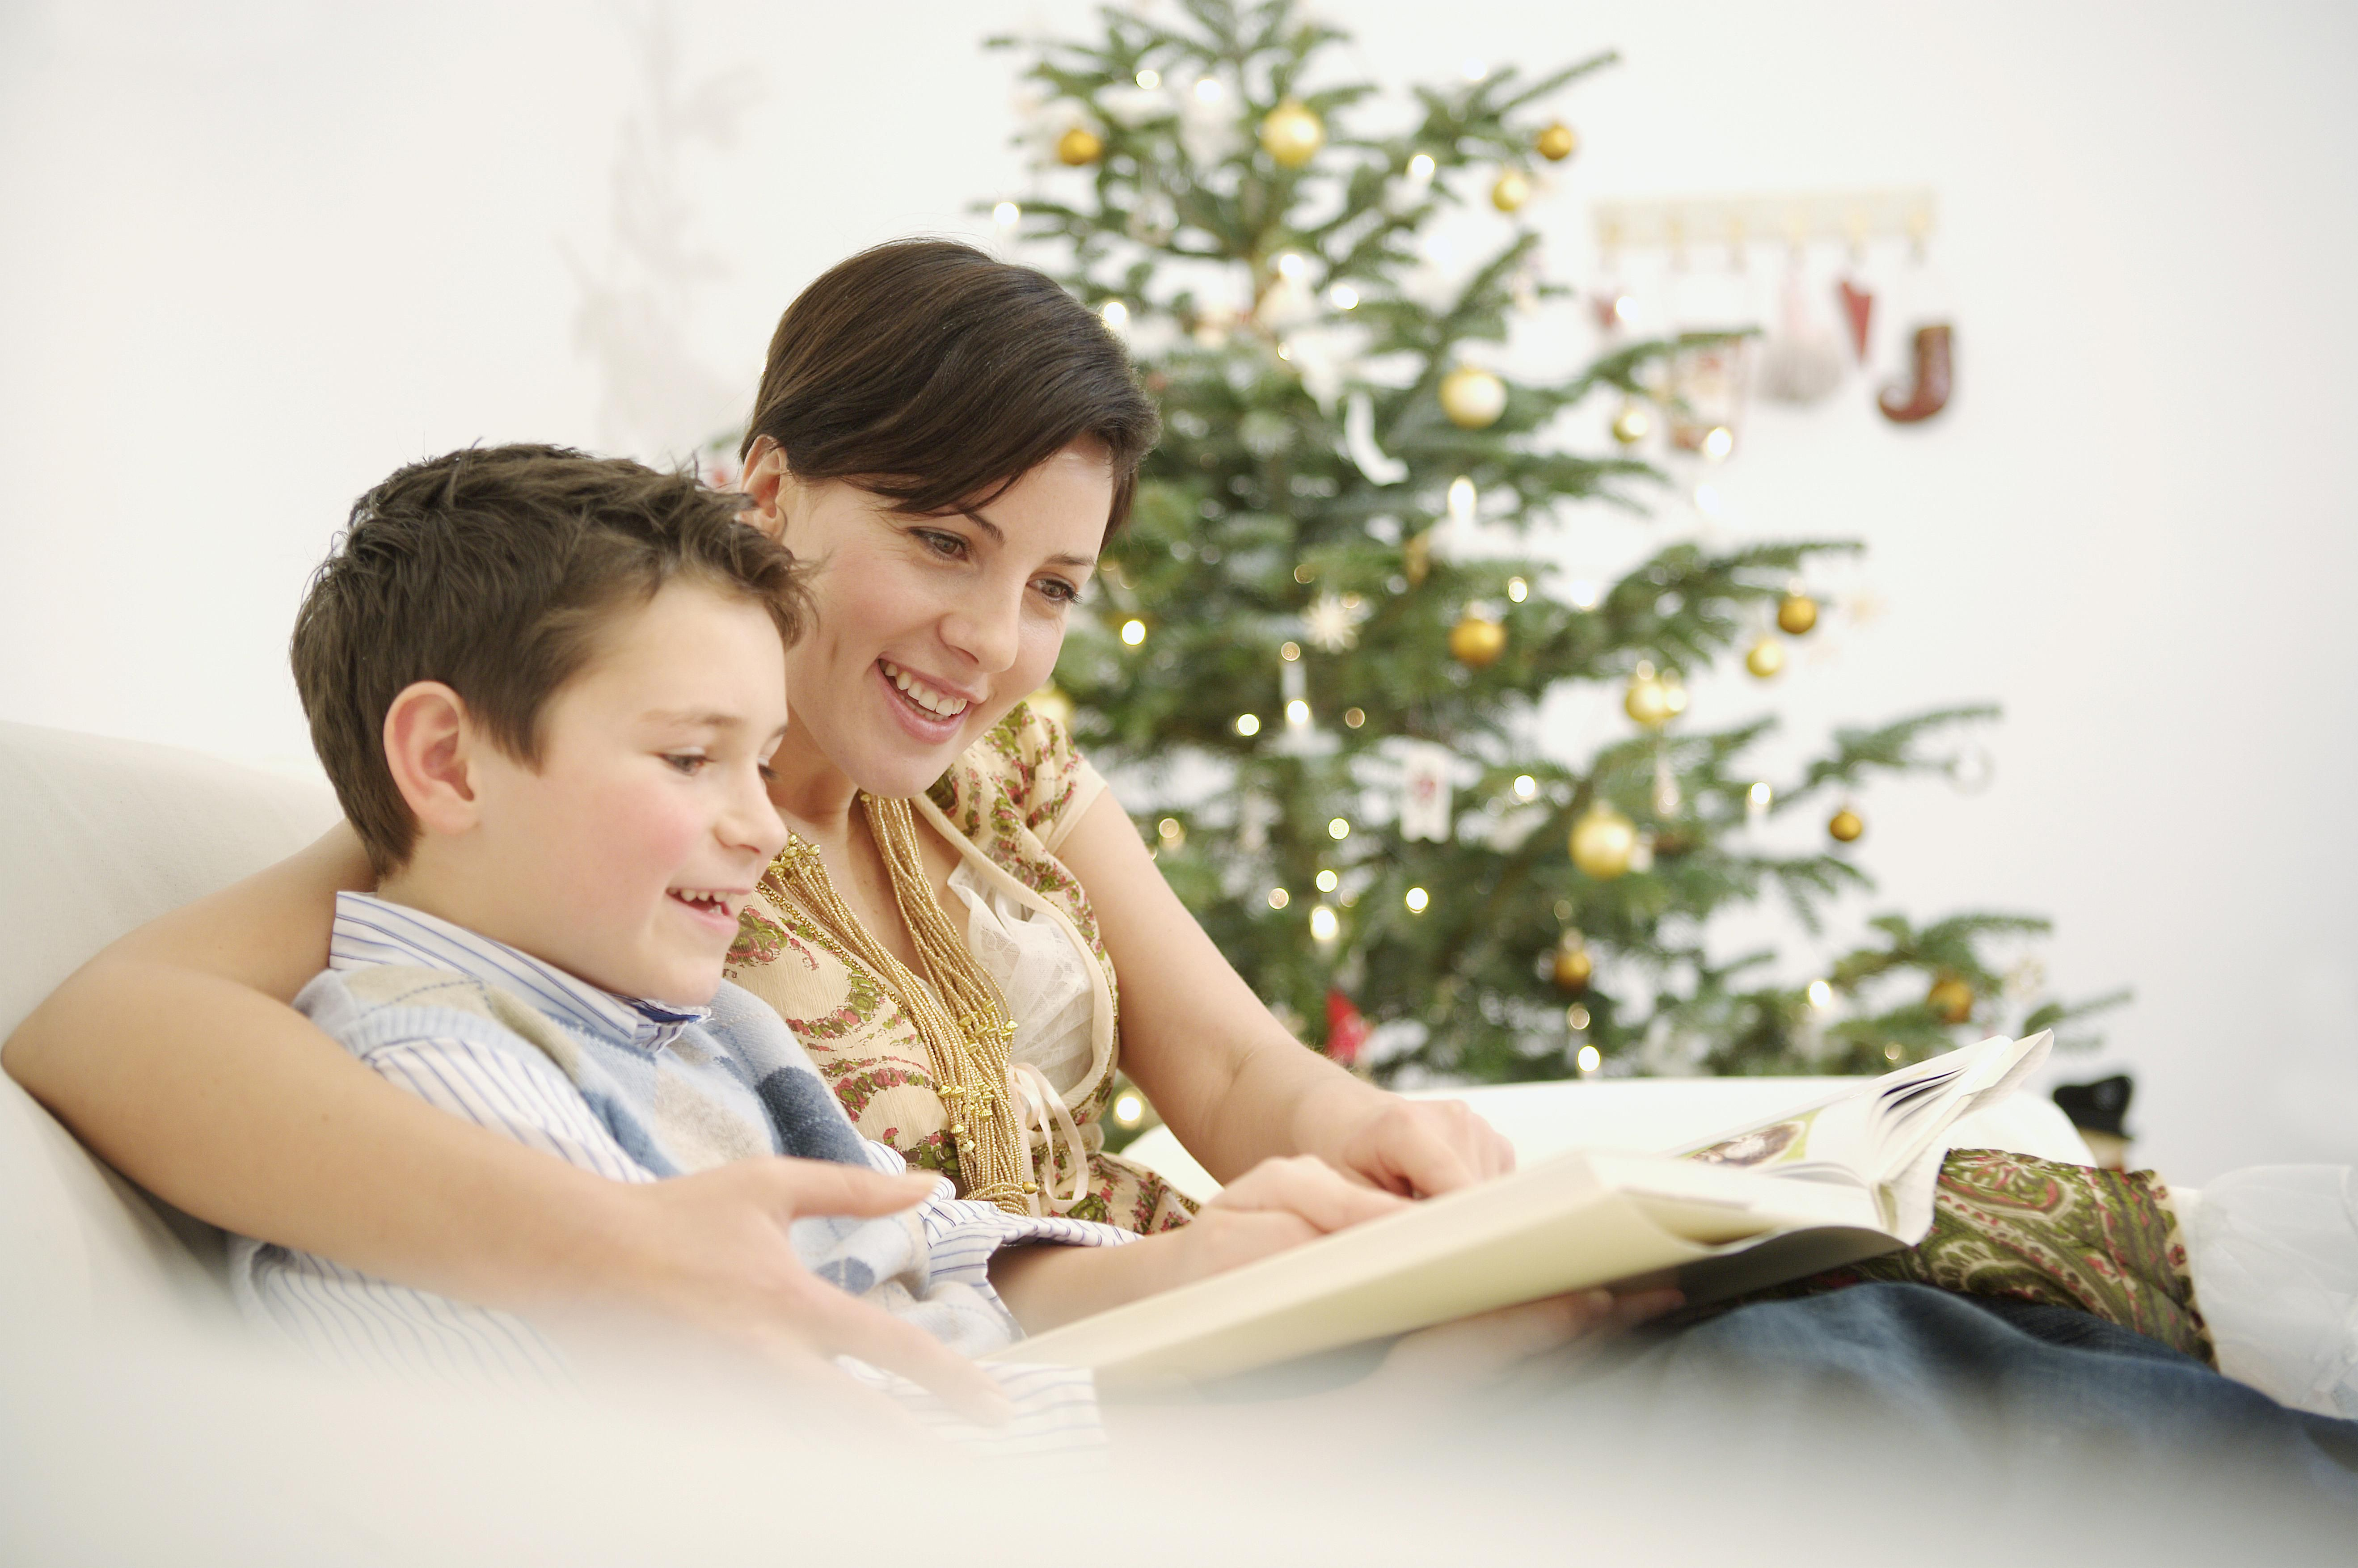 Mother and young son reading on sofa at Christmastime